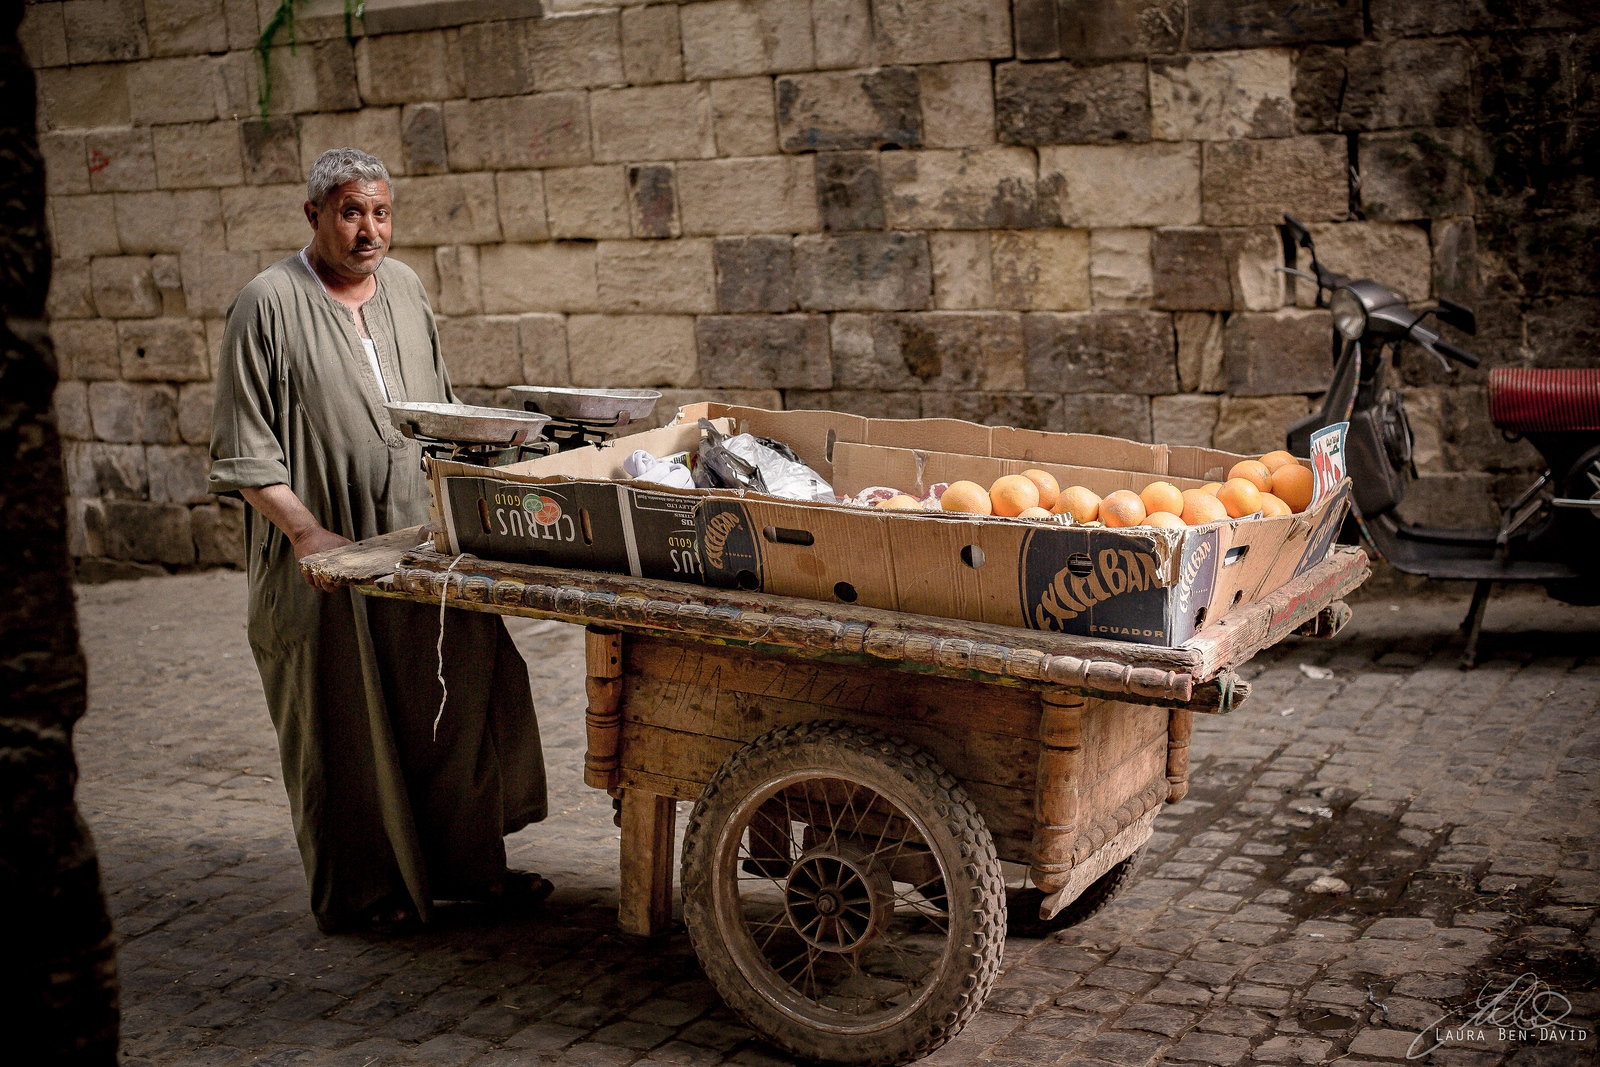 Street vendor in the old Jewish quarter in Cairo